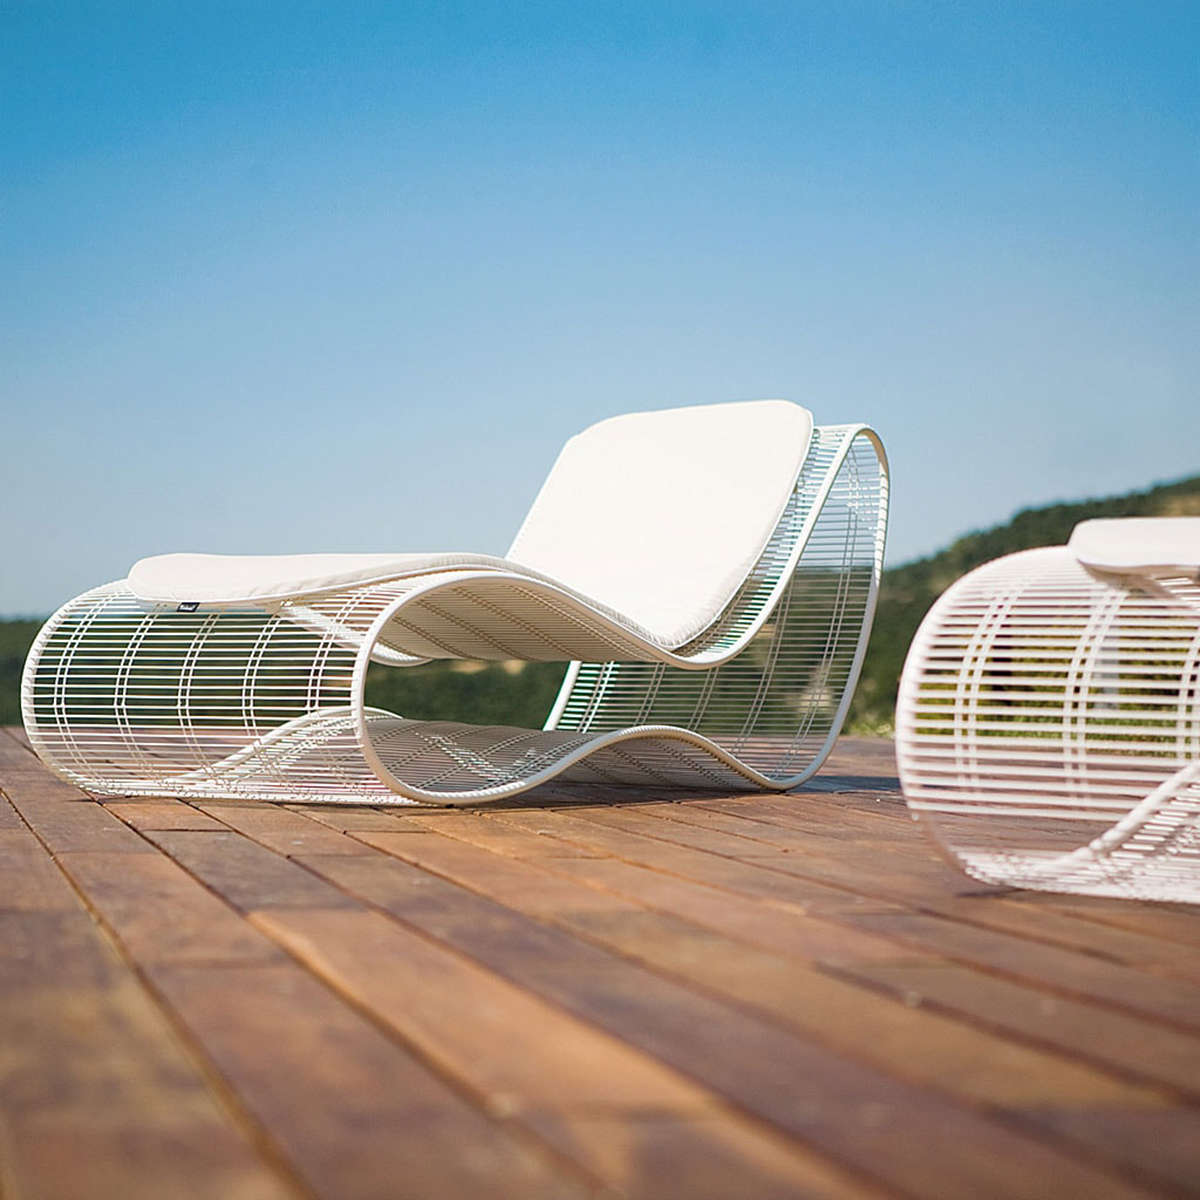 Light Steel Mesh Ergonomic Contour Design Sun Lounger White Cushions